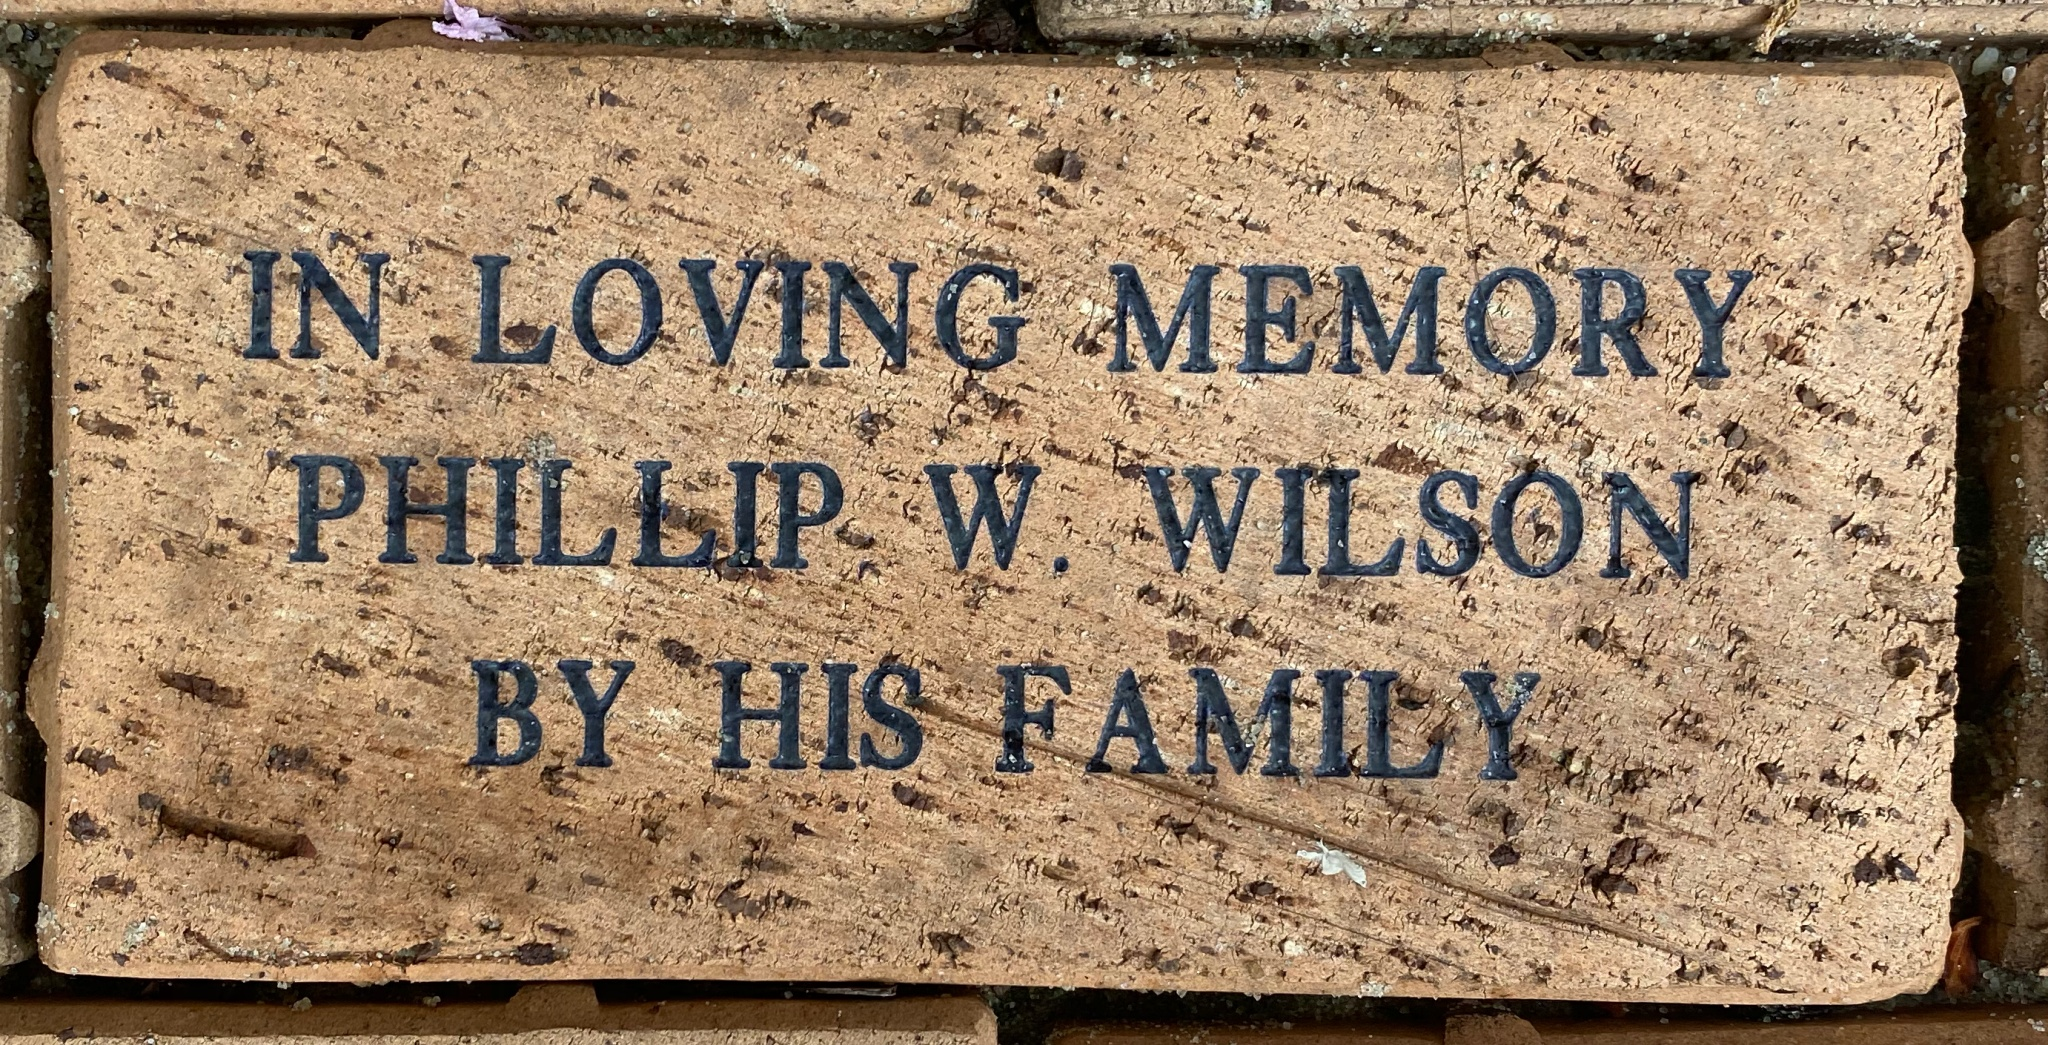 IN LOVING MEMORY PHILLIP W. WILSON BY HIS FAMILY